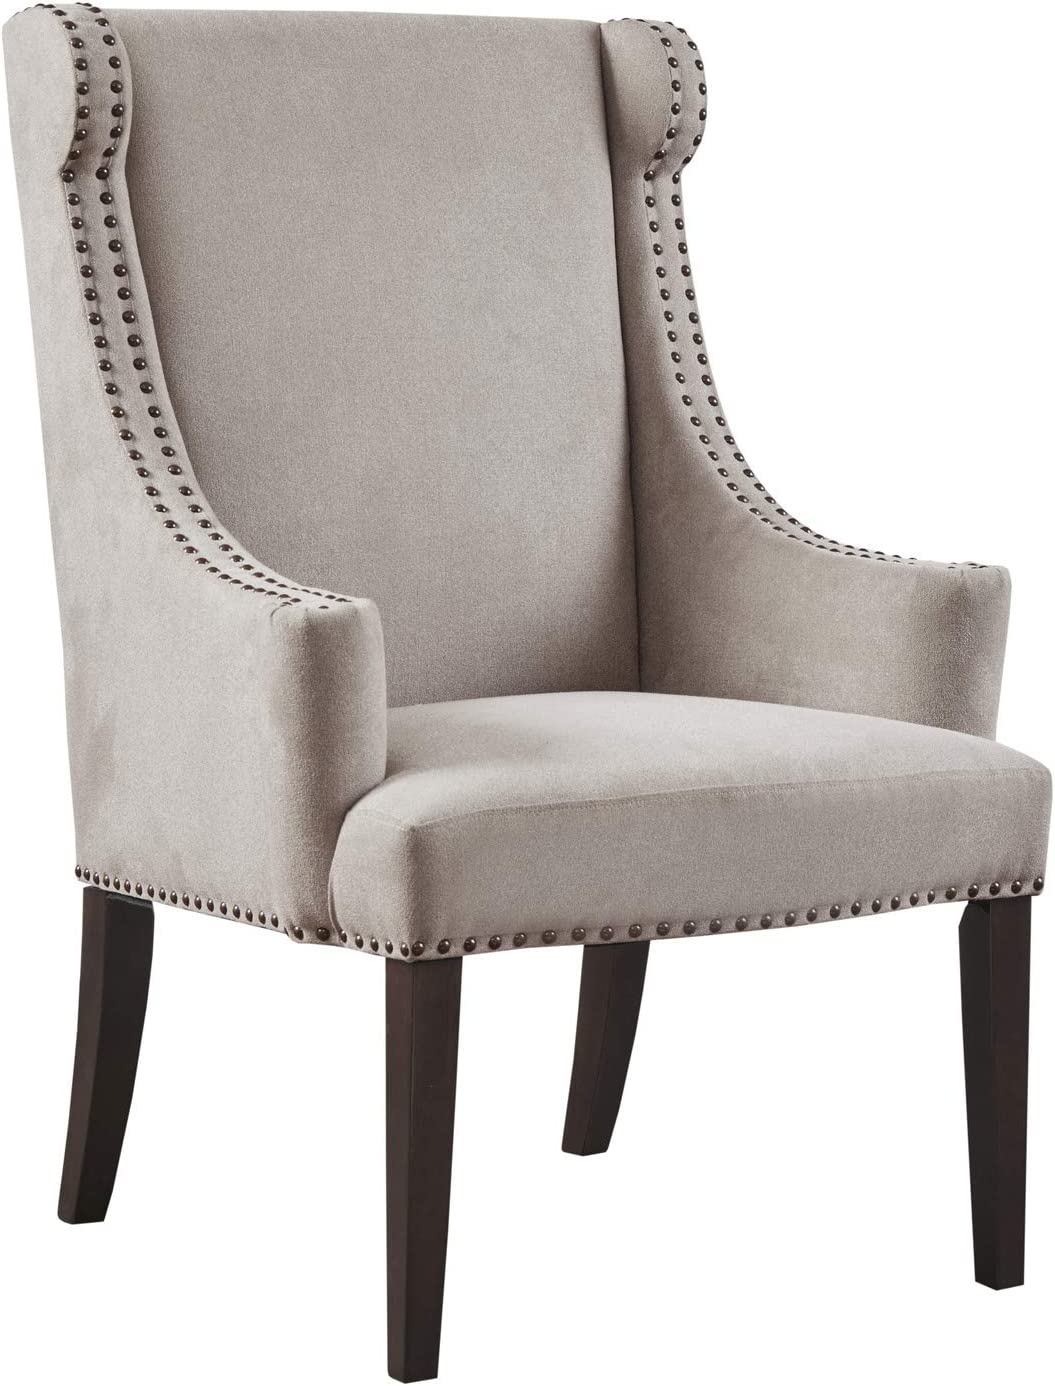 Madison Park FPF18-0098 Marcel Chair